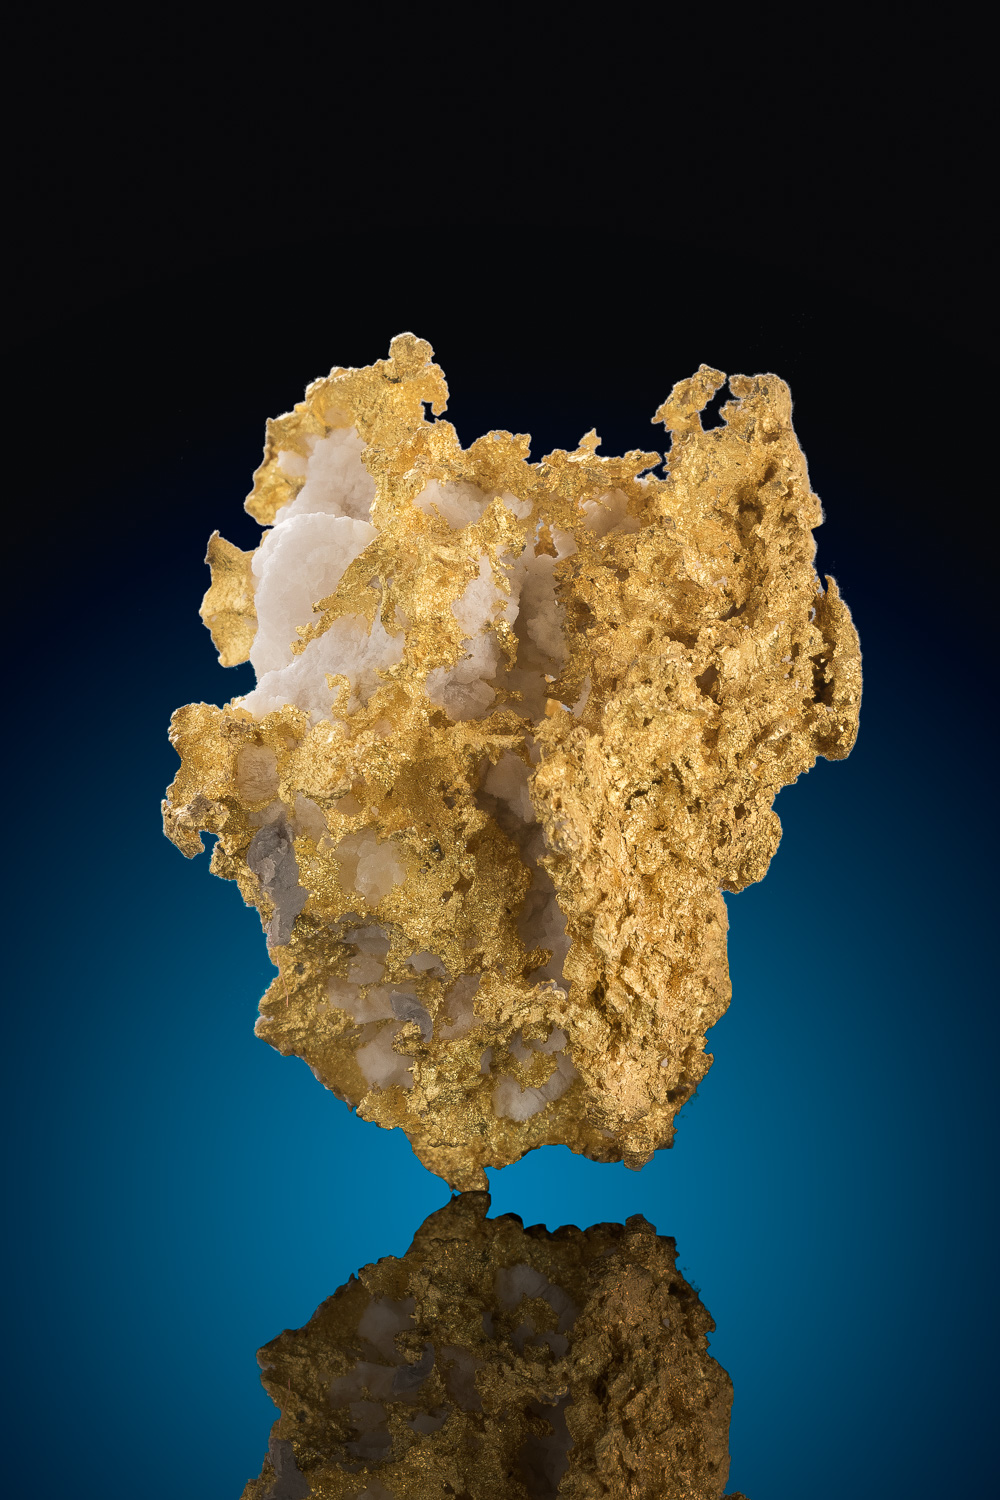 A beautiful Crystalline Gold and Quartz Specimen - California